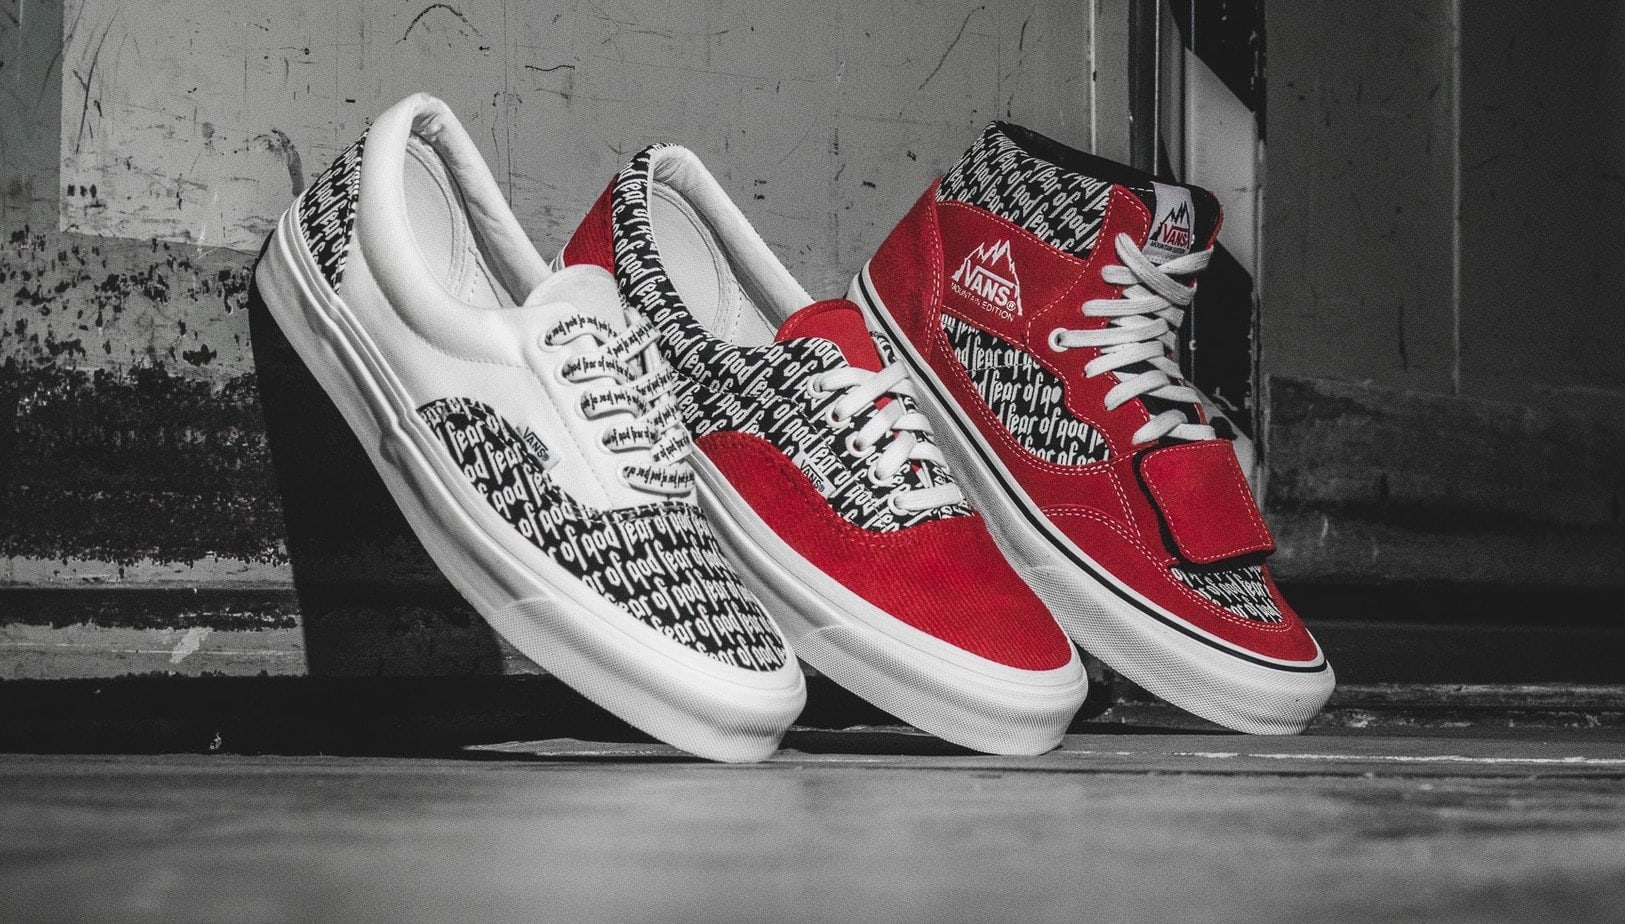 9293e798a2 Fear of God x Vans 2017 Collection Online Links - JustFreshKicks